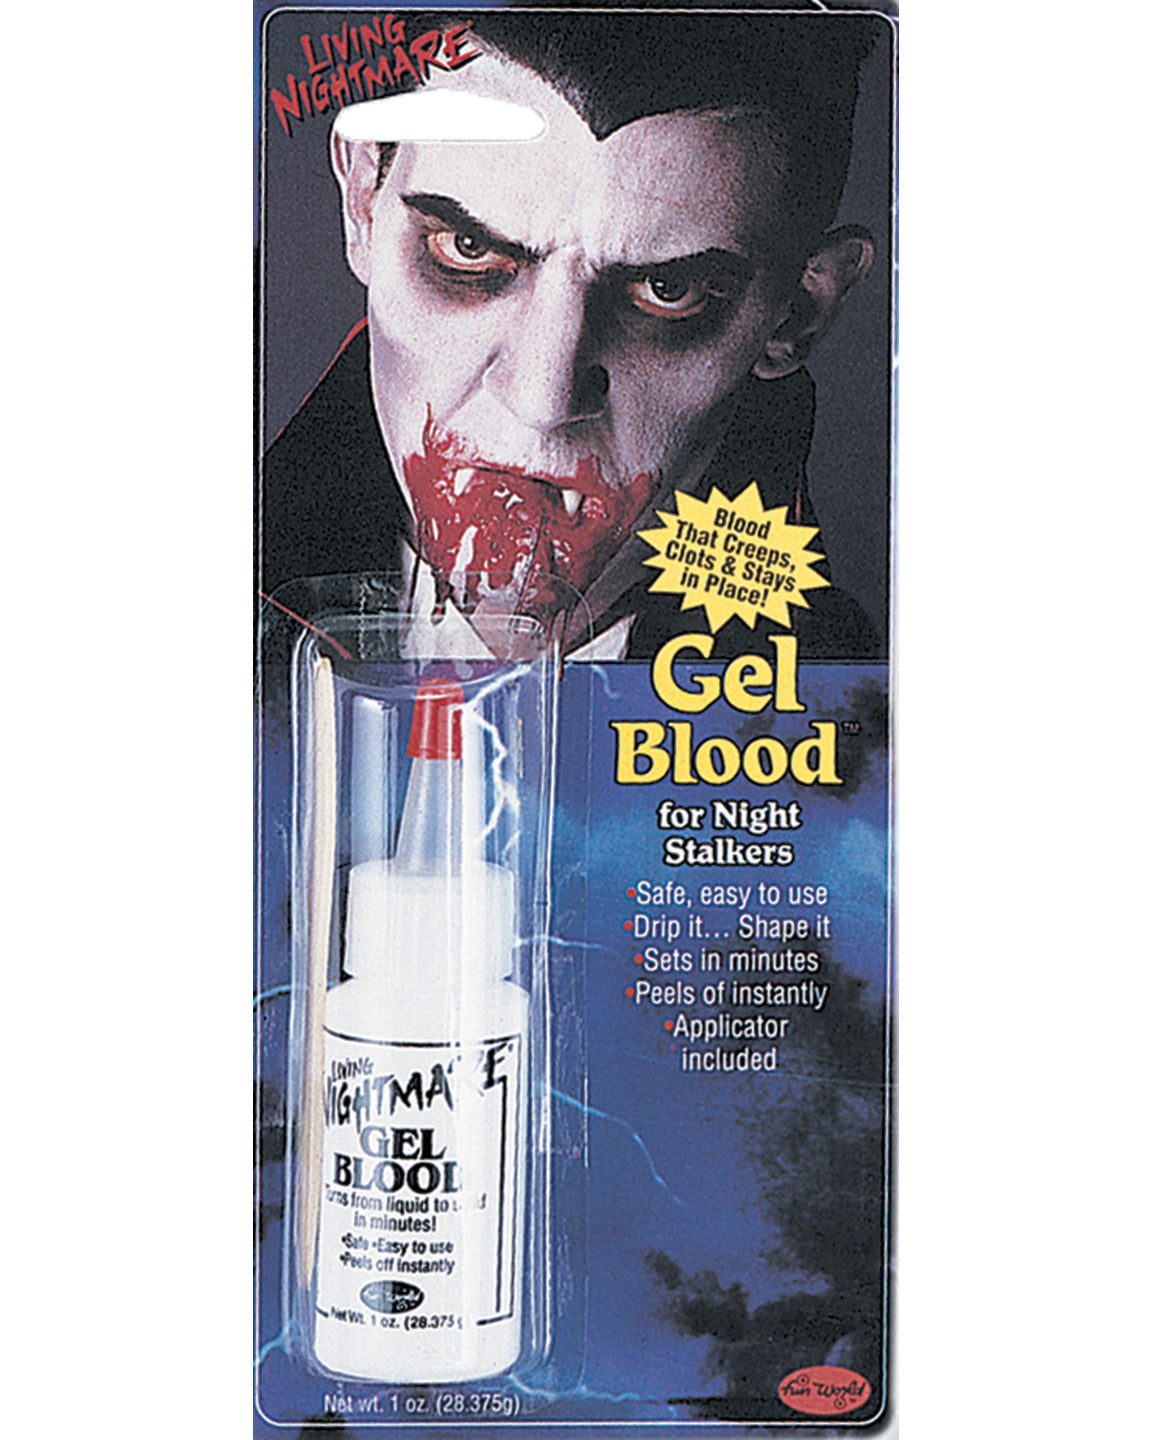 Living Nightmare Gel Blood